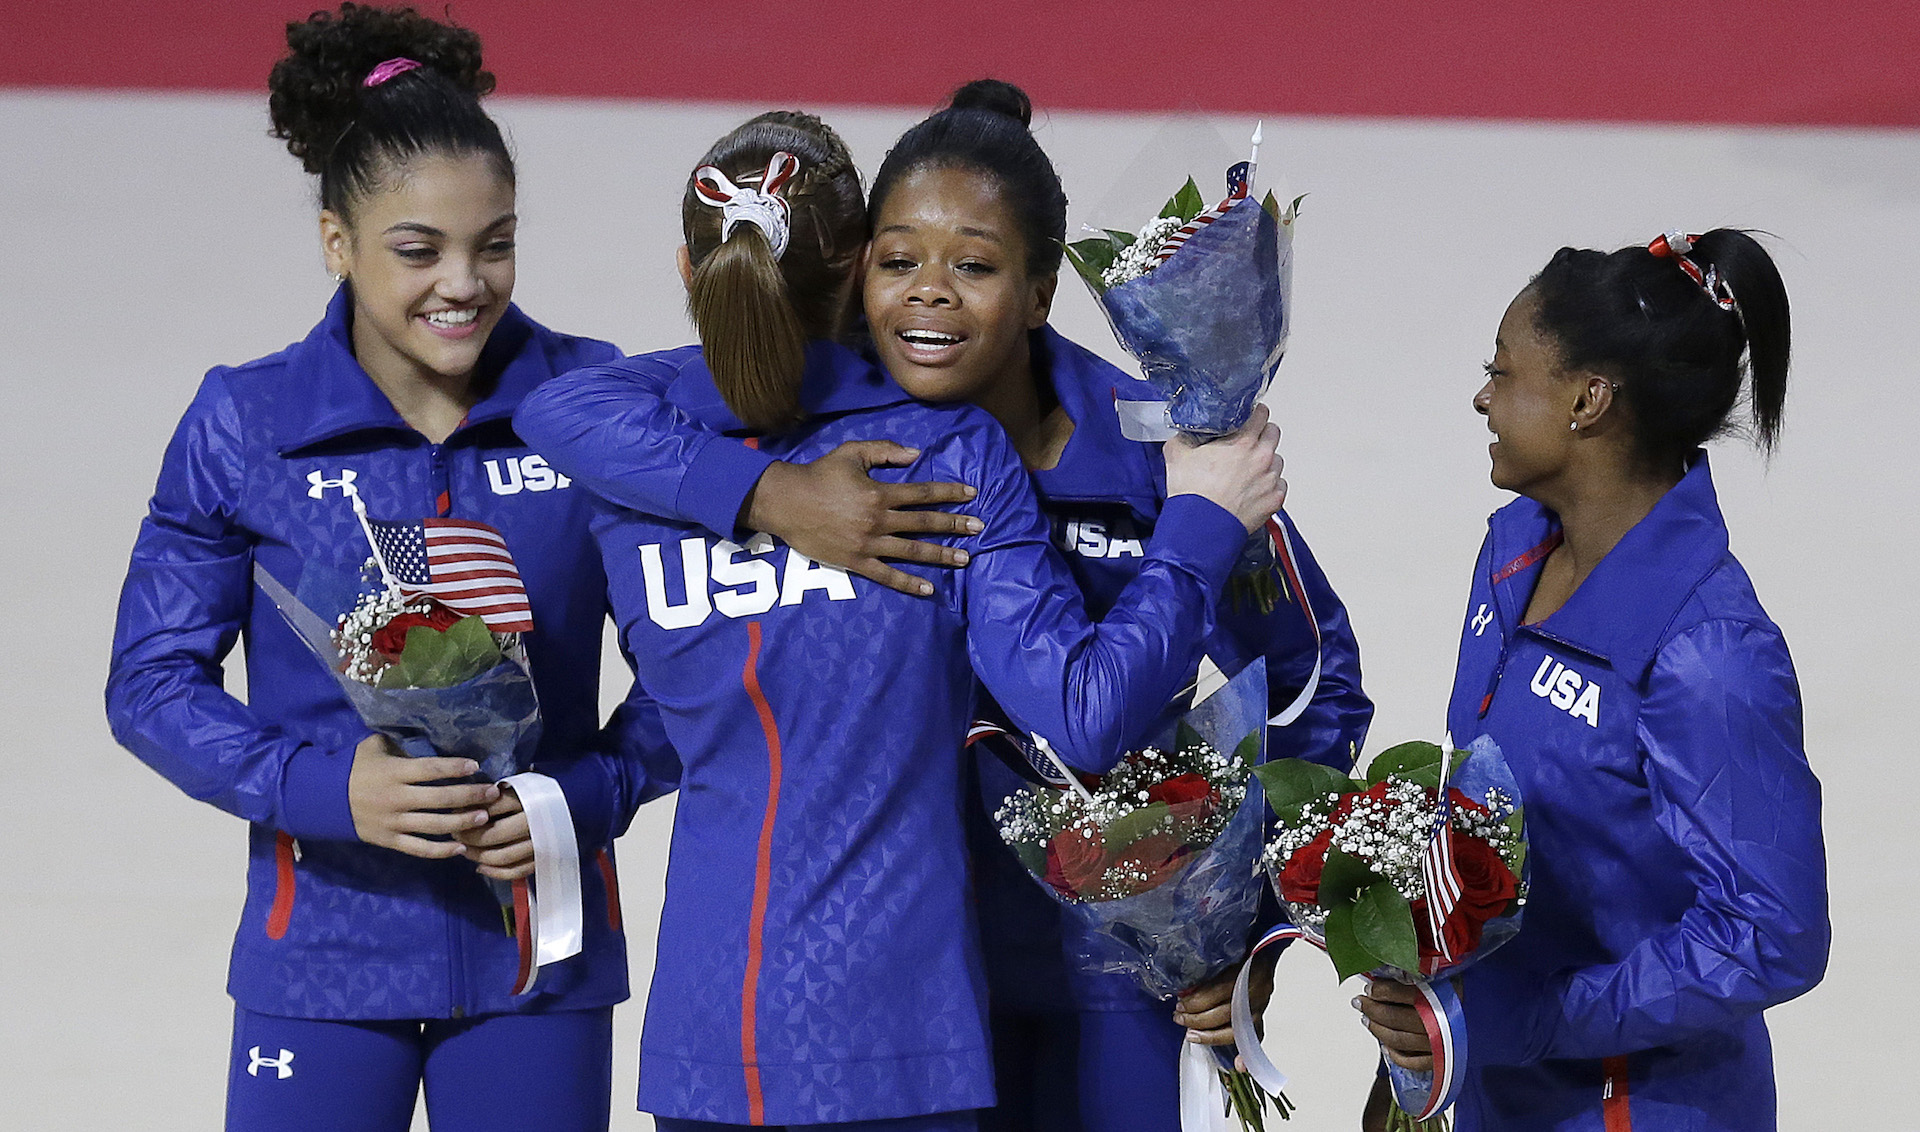 Simone Biles's inevitable greatness is verified with a dazzling all-around gold